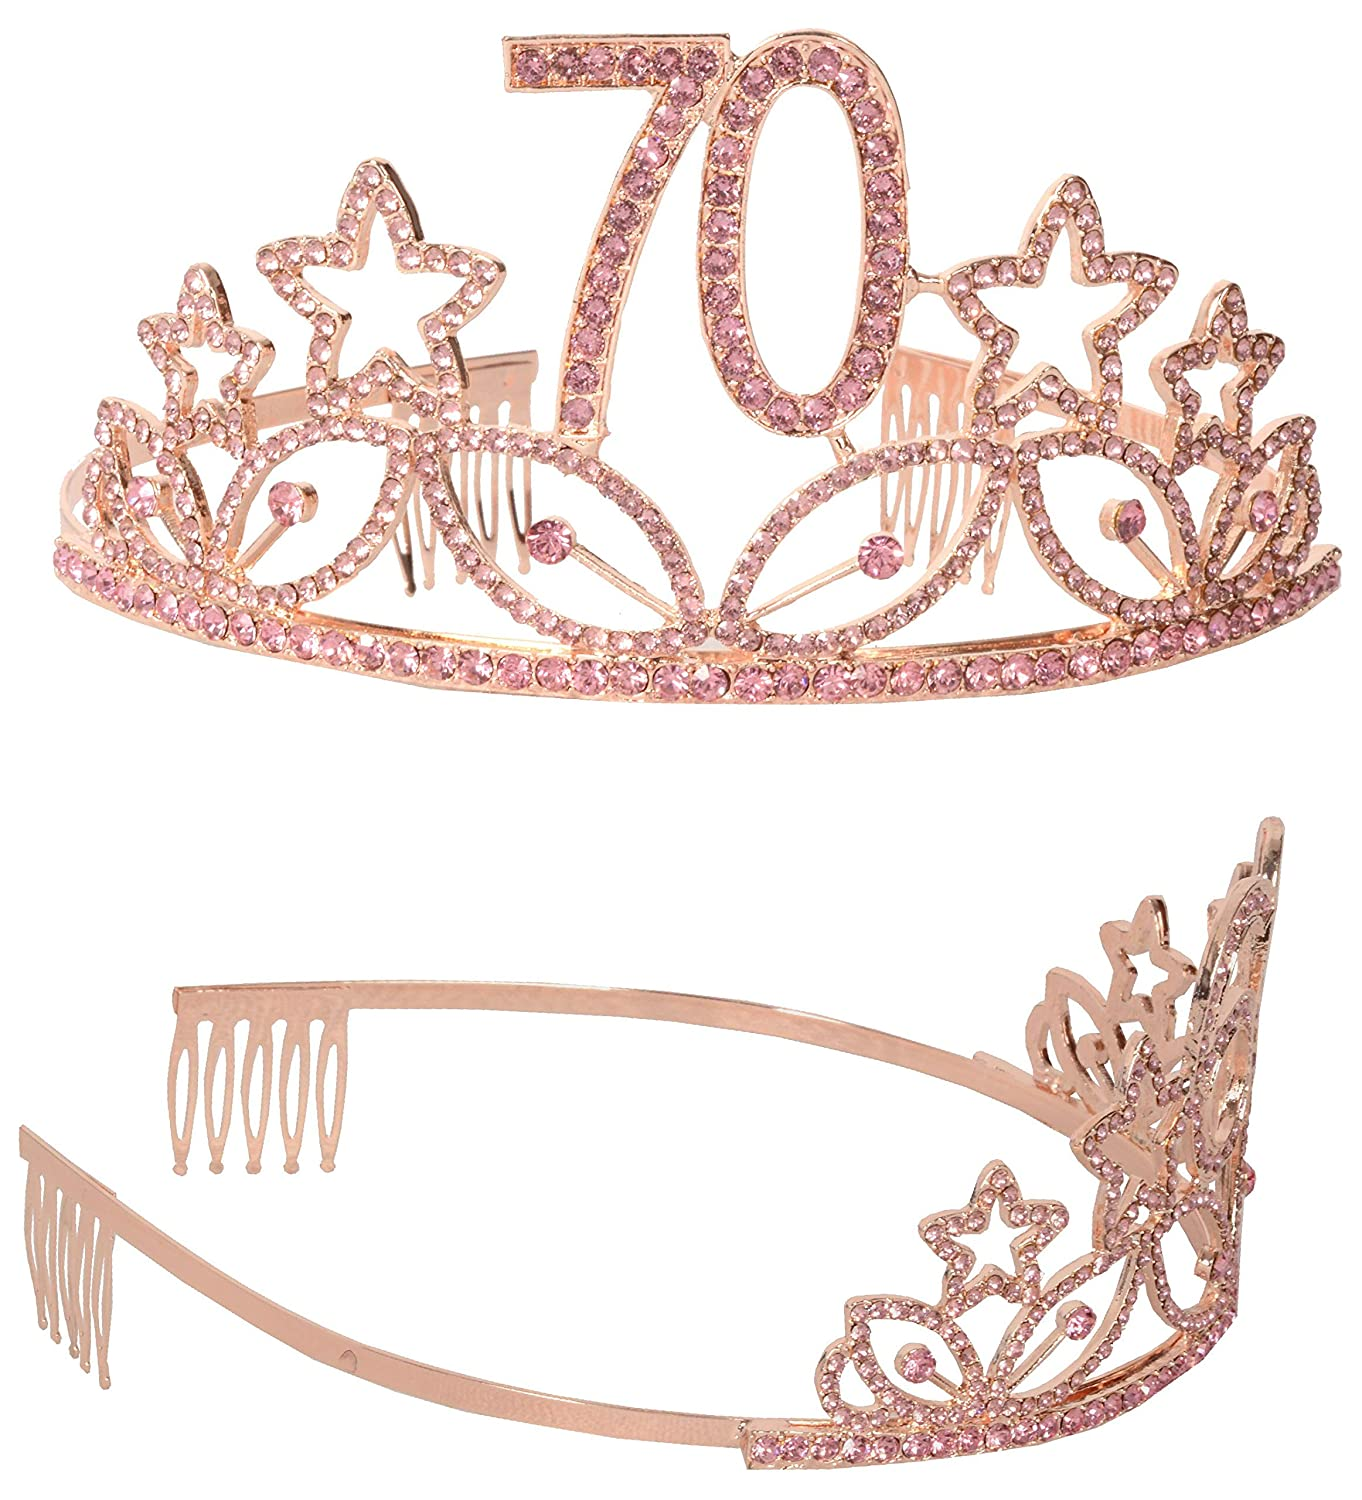 Pink 70th Black Glitter Satin Sash and Crystal Tiara Birthday Crown for 70th Birthday Party Supplies and Decorations MEANT2TOBE 70th Birthday Tiara and Sash,Happy 70th Birthday Party Supplies